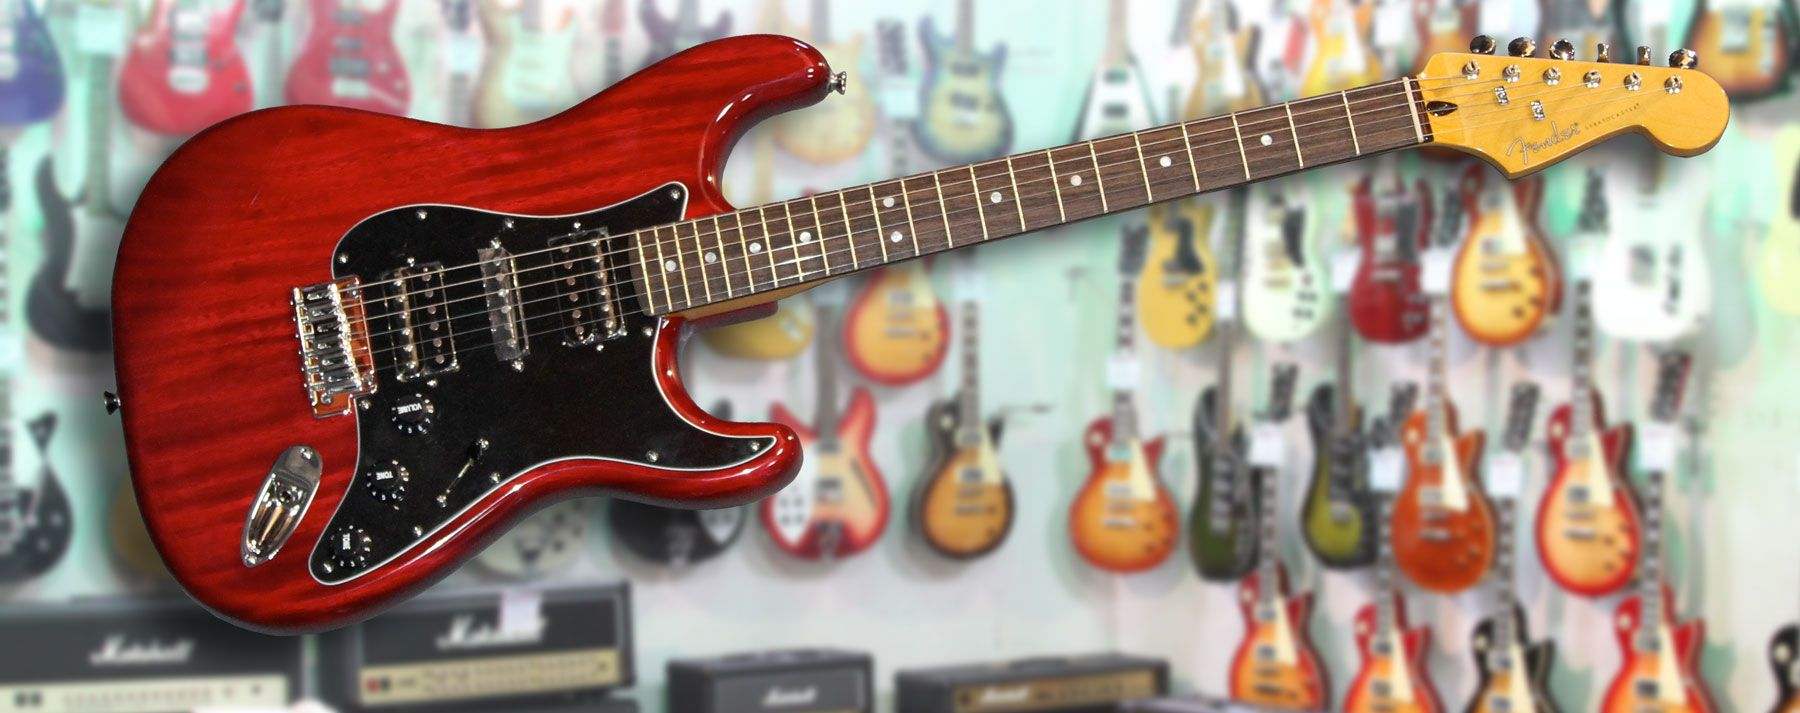 Wiring Diagram Modern Player Stratocaster 41 Images Factory Hss Guitar 1384942e402307568395a8290db149a8 Rock Electric Guitars Fender